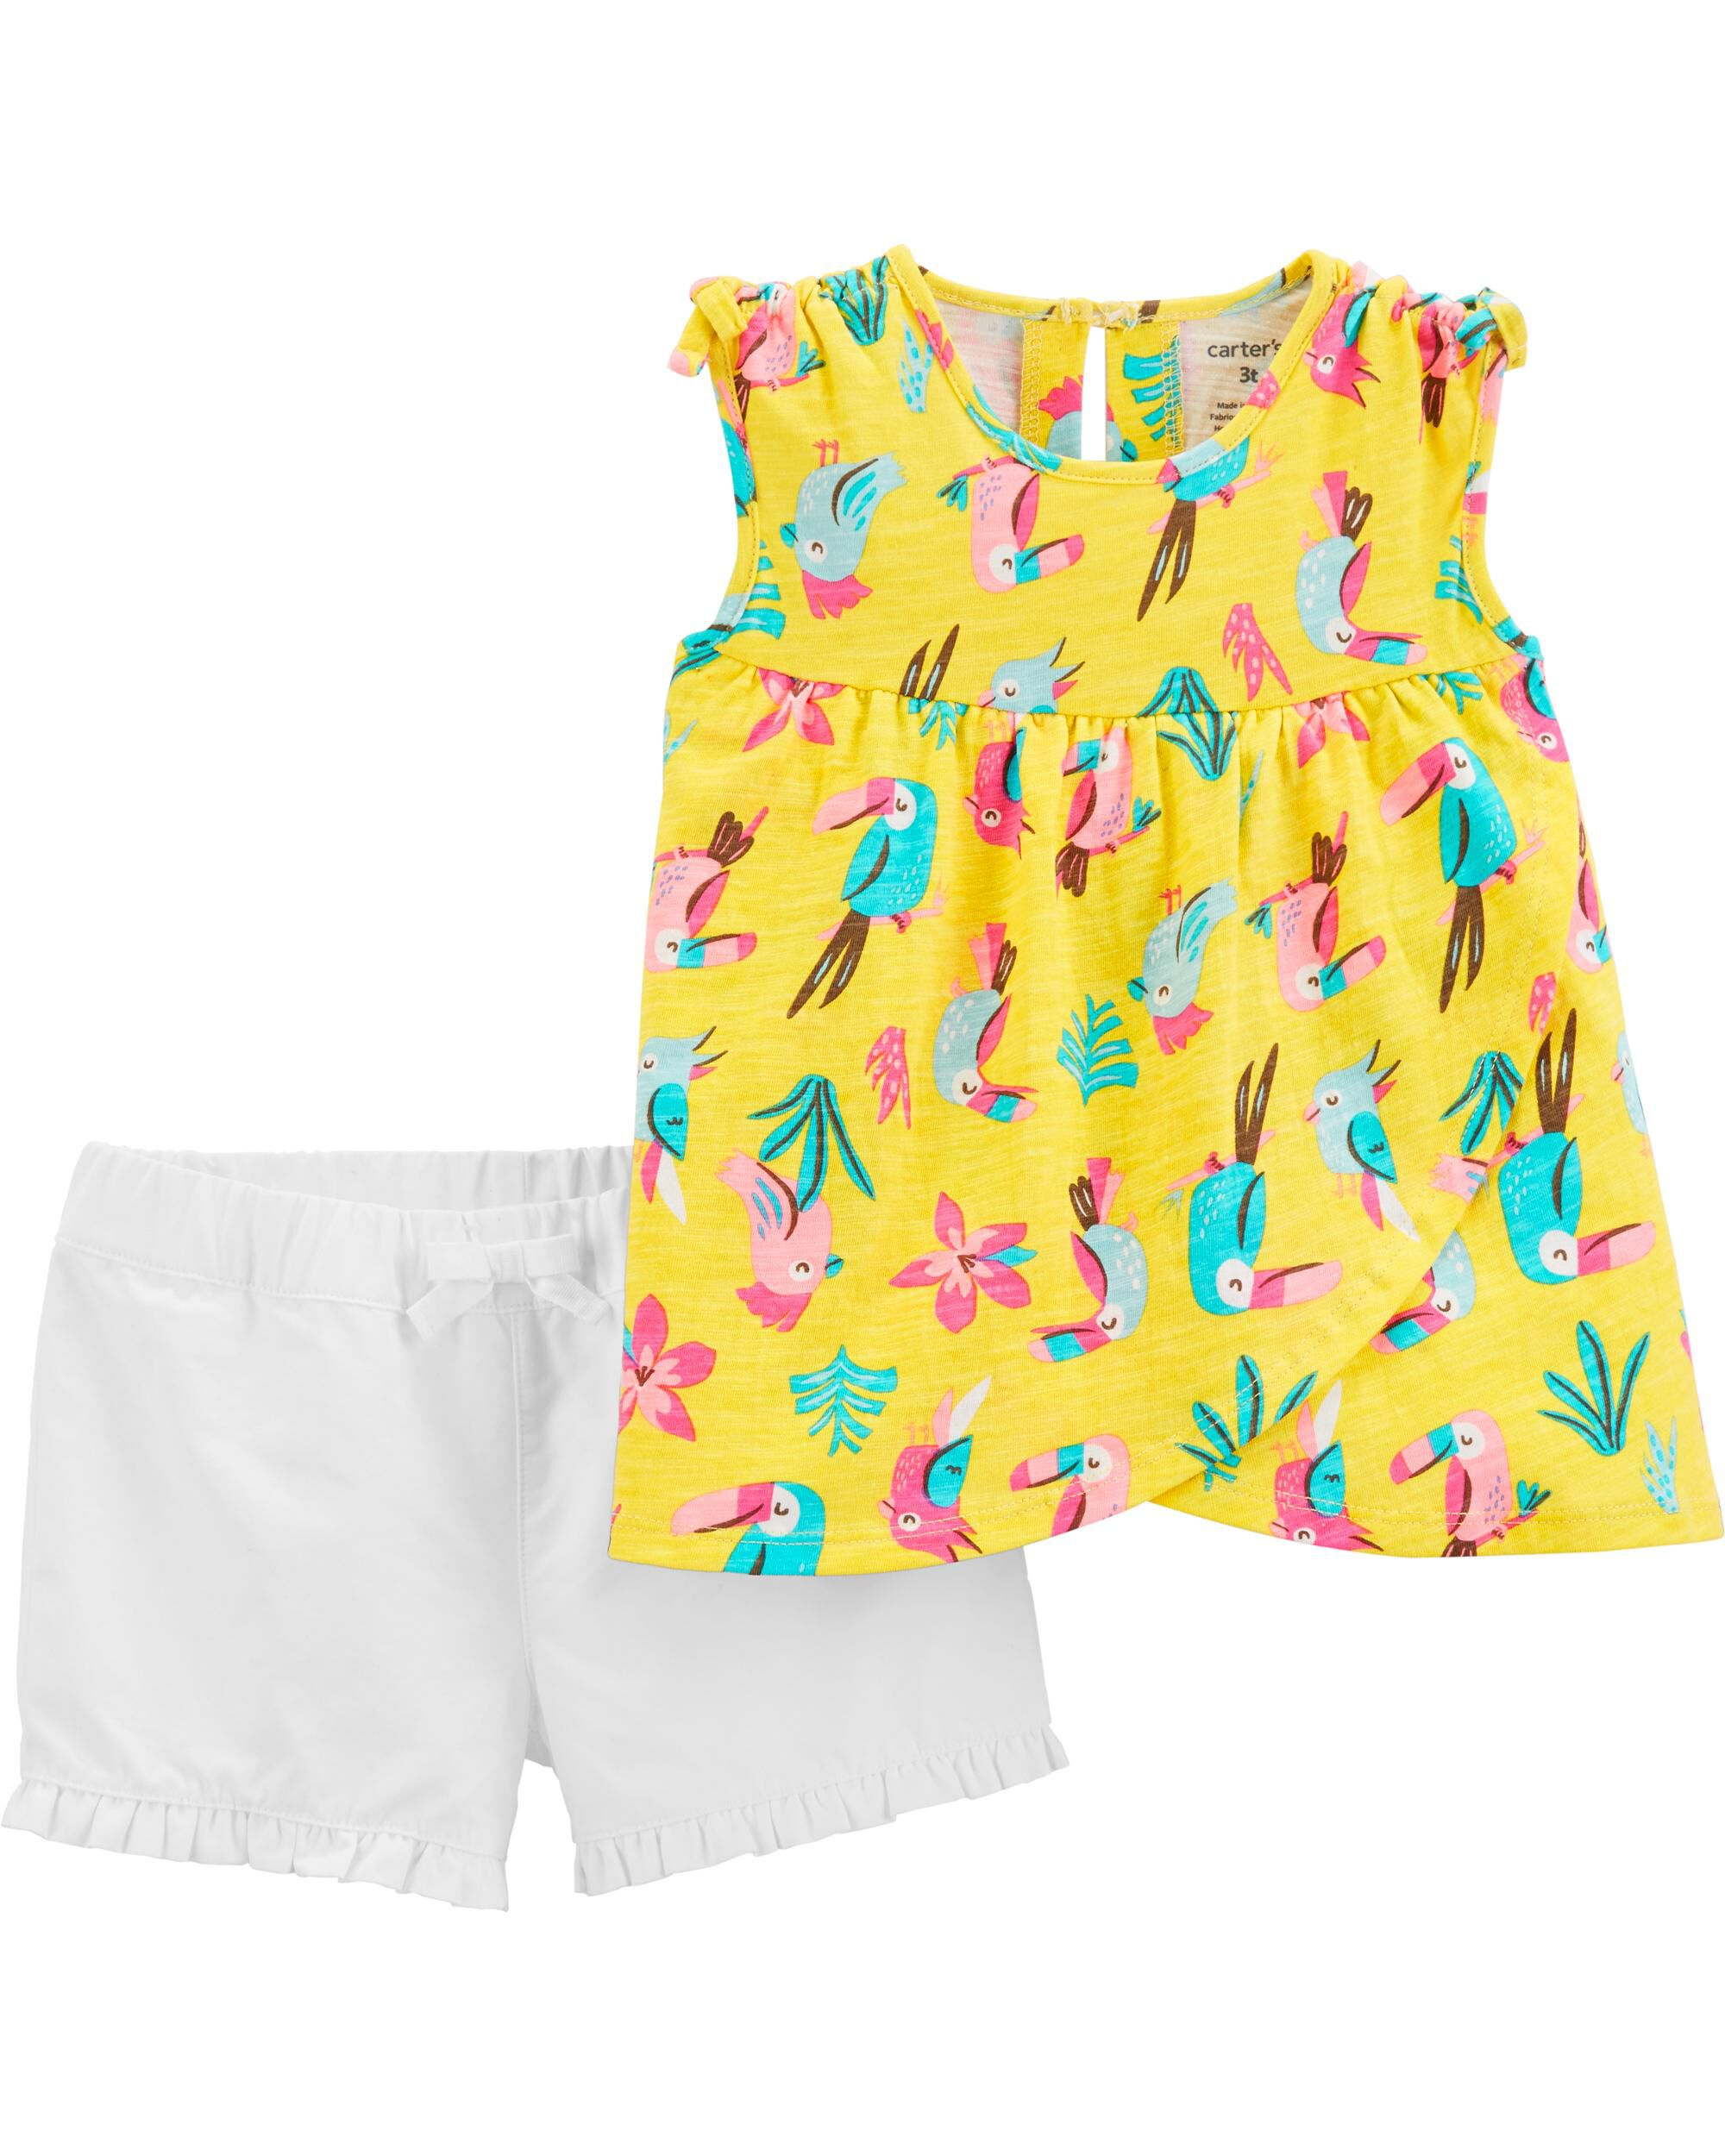 Baby Carter's Baby Girl Skirt 6m Tropical Skirt With Built In Pants Free P+p Big Clearance Sale Girls' Clothing (0-24 Months)